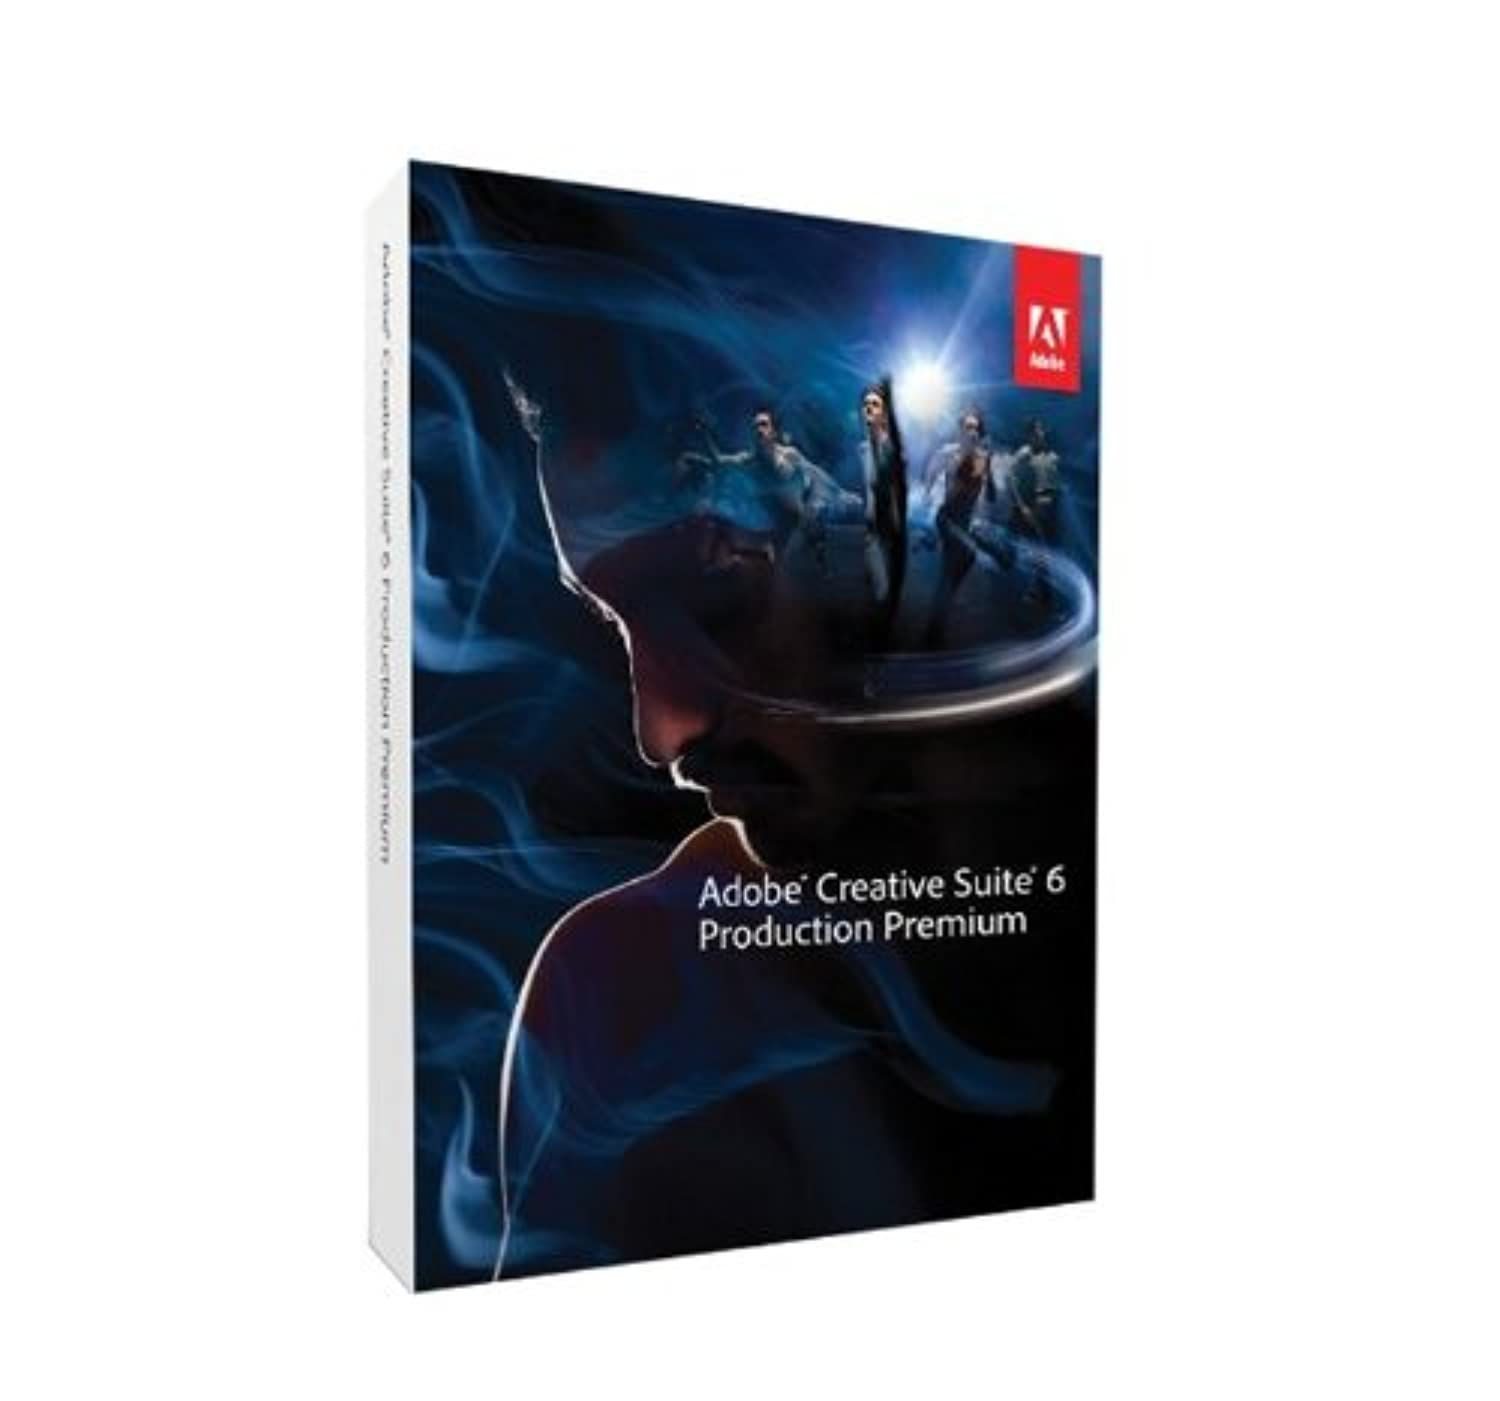 住人音価値Adobe Creative Suite 6 Production Premium Macintosh 英語版